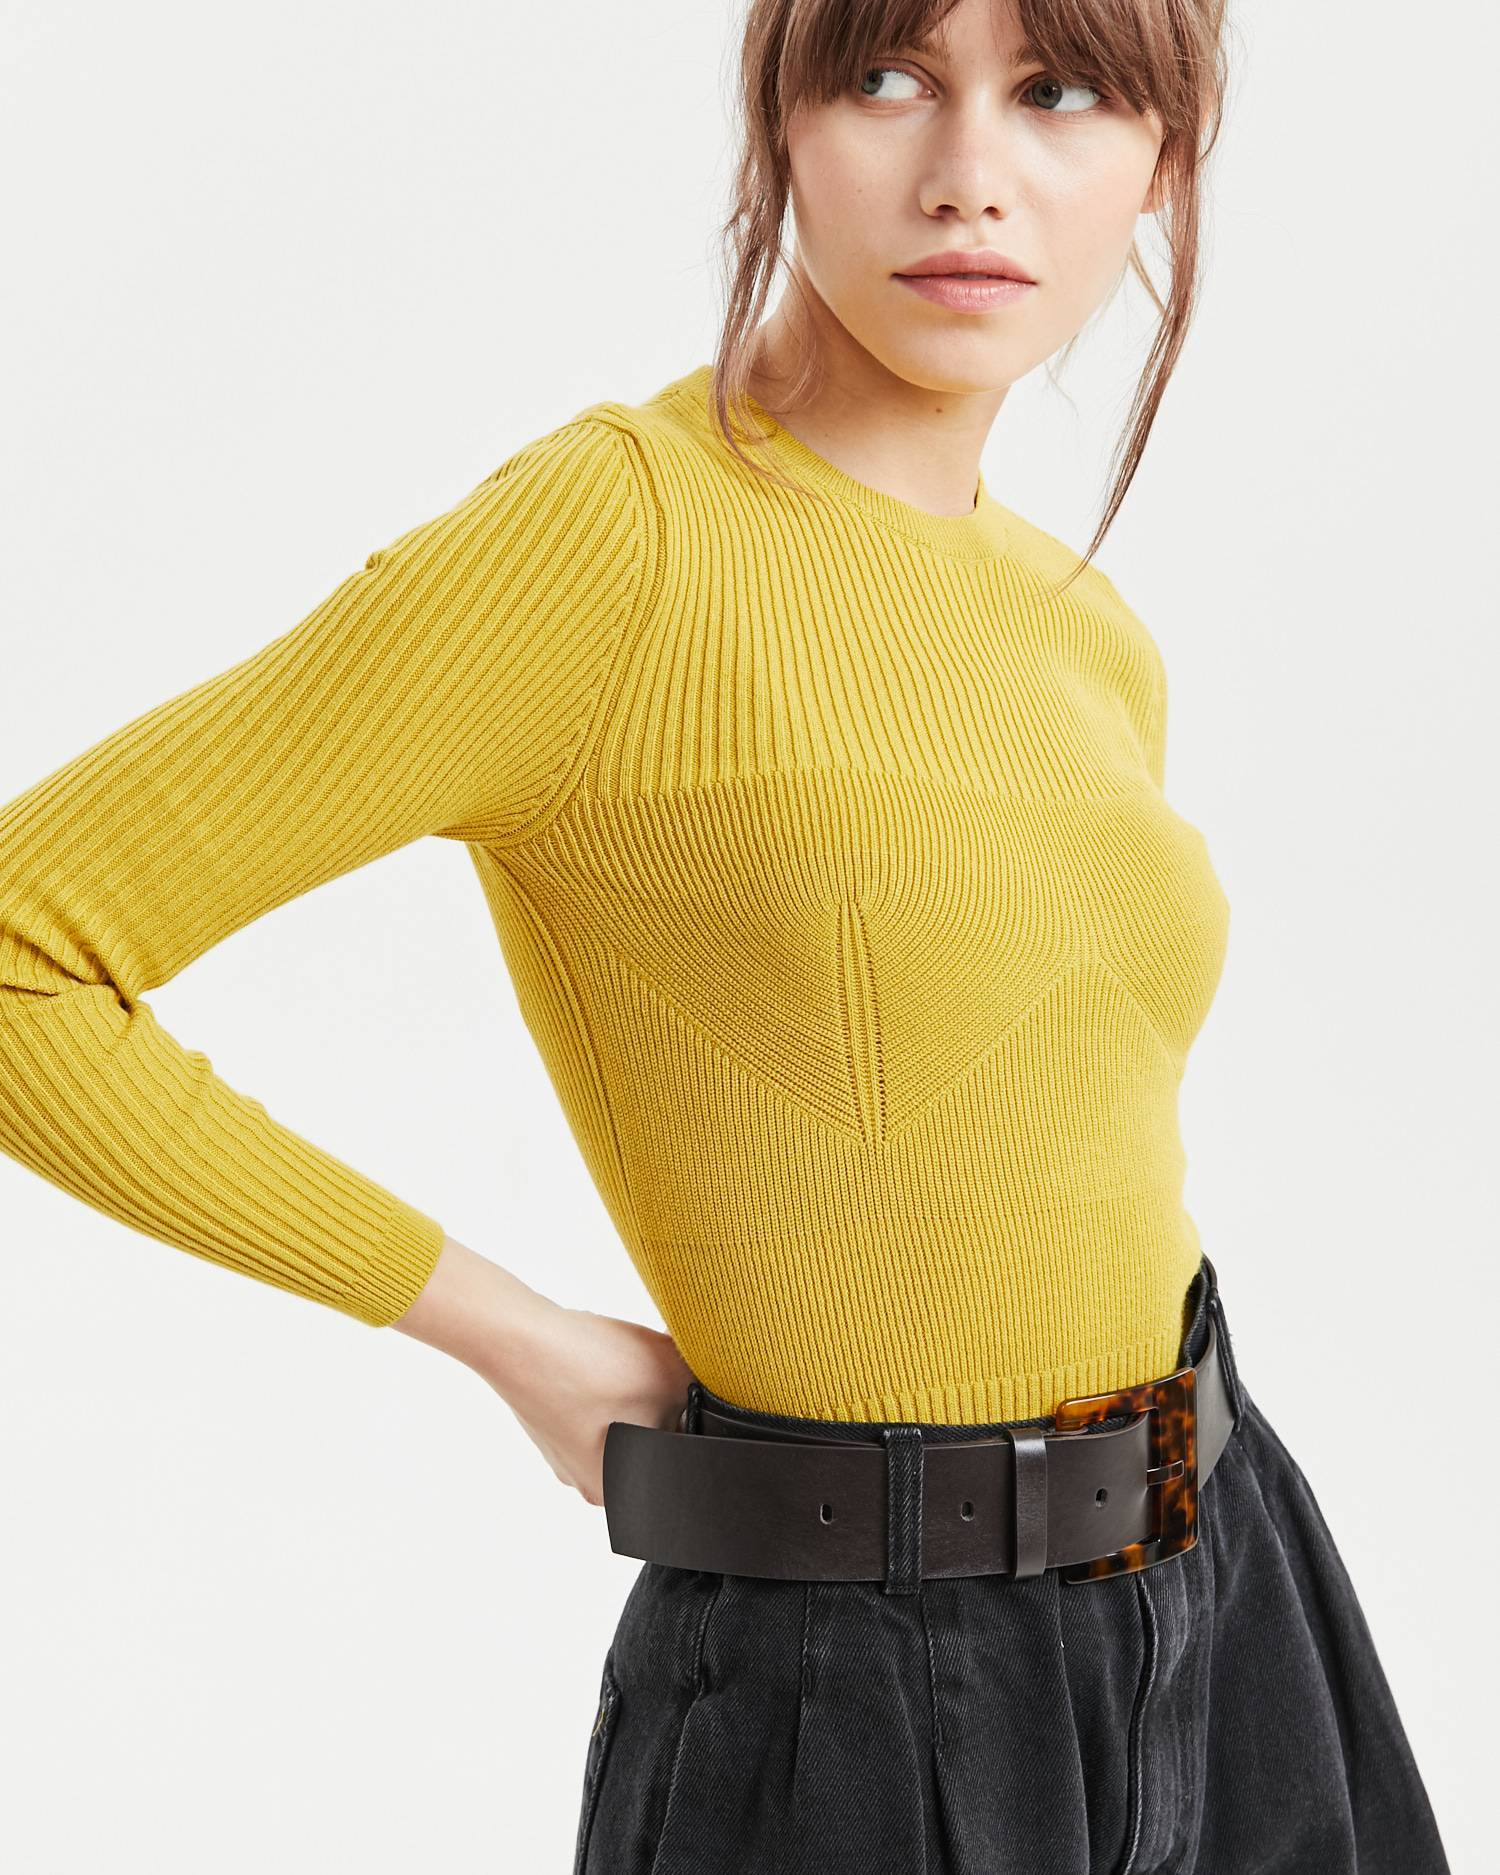 Relief style mock neck